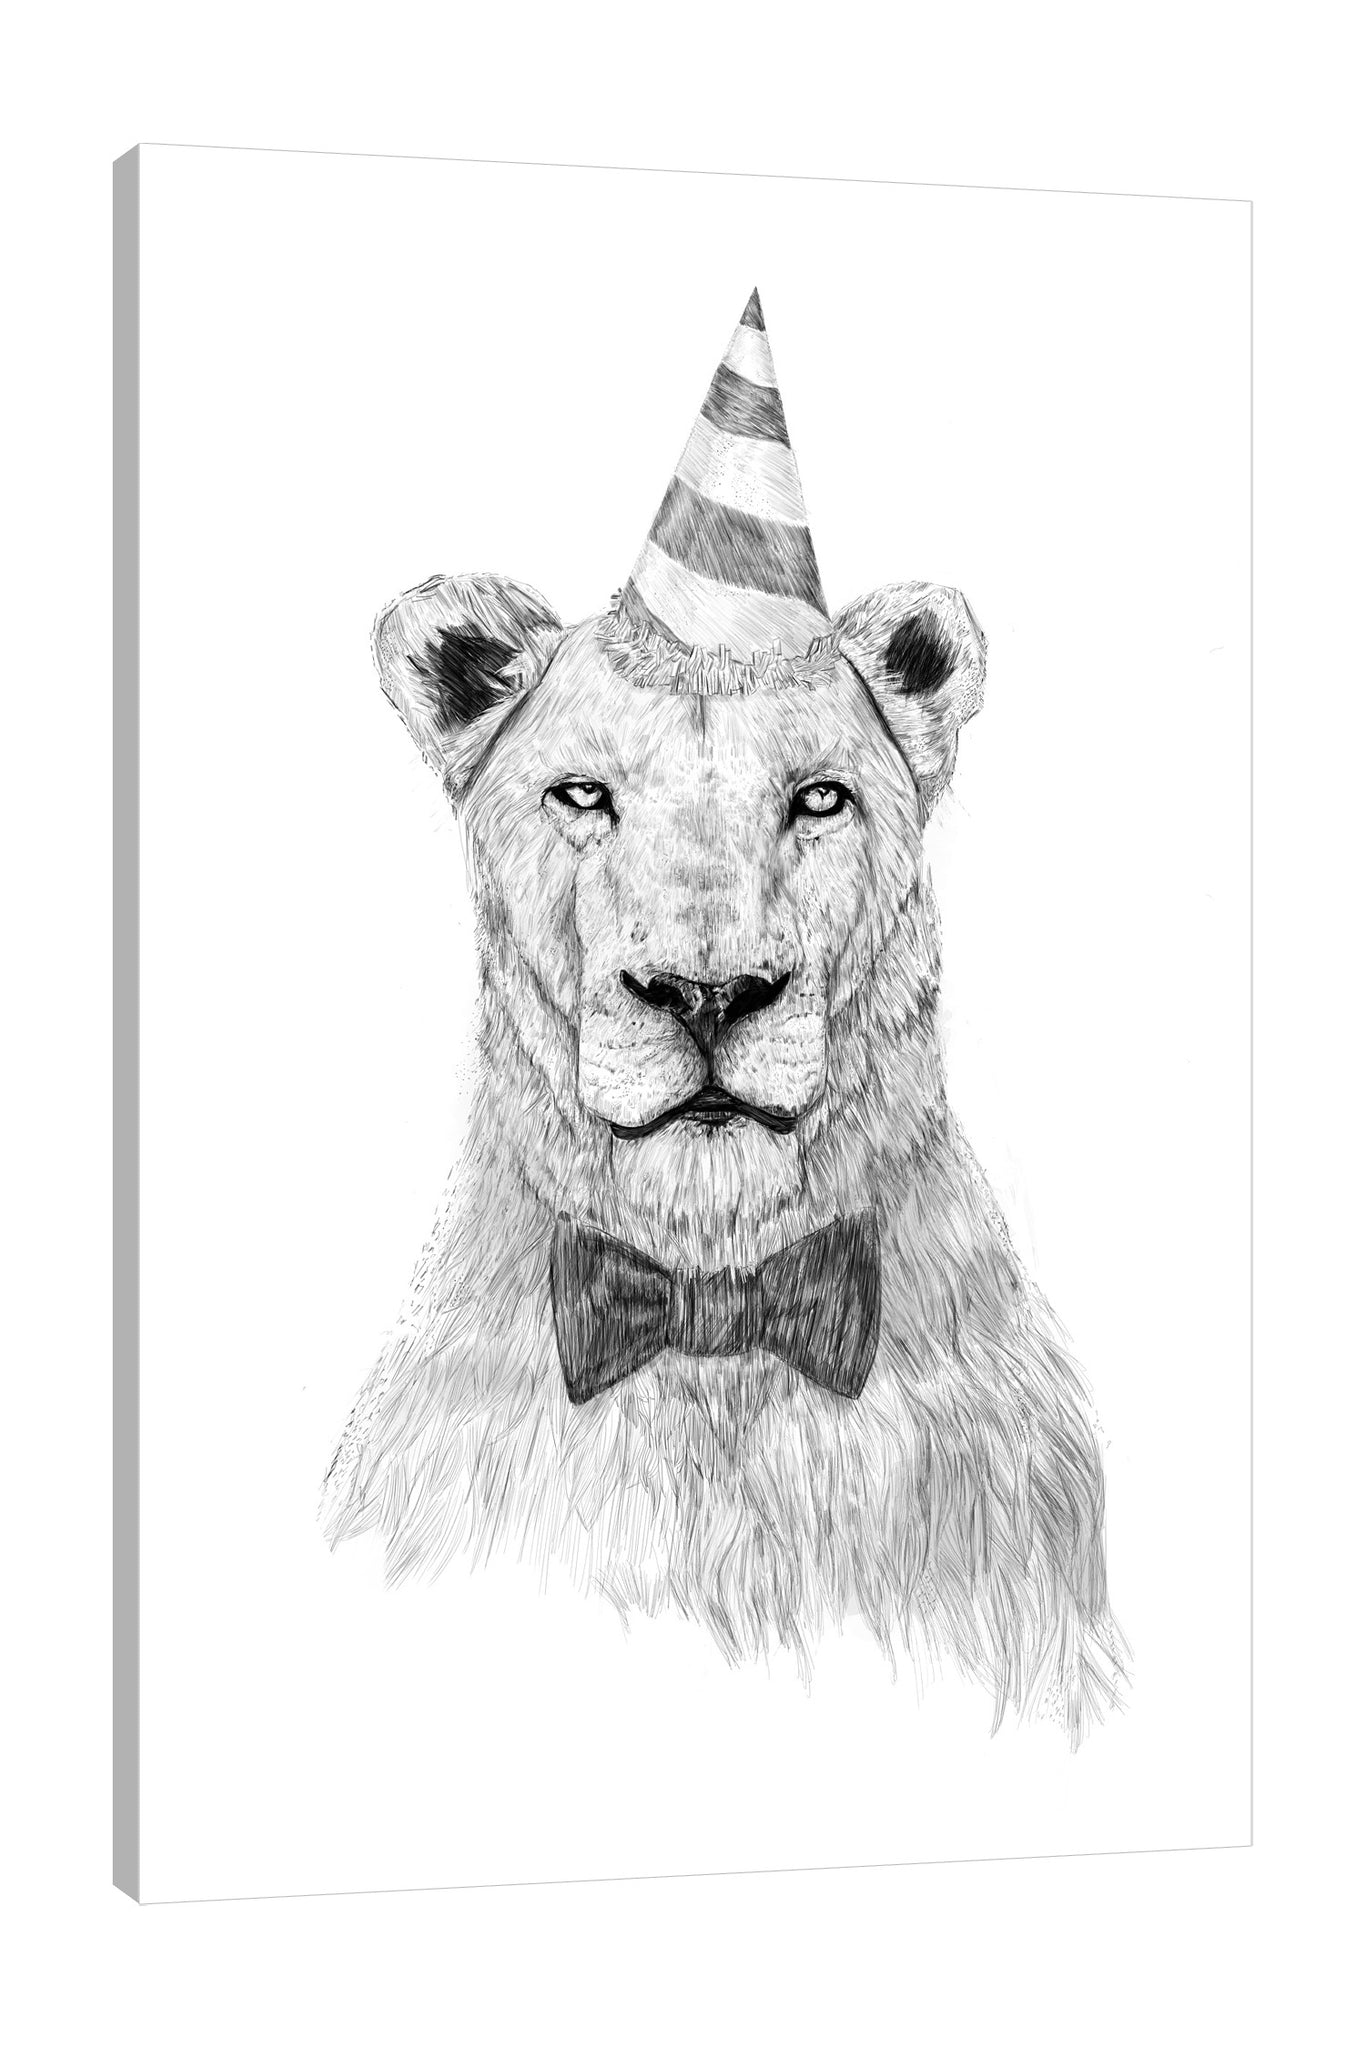 Balazs-Solti,Modern & Contemporary,Animals,Entertainment,animals,animal,lion,lions,bow,bows,party hat,party hats,parties,lines,strokes,line,stroke,black and white,Mint Blue,Red,White